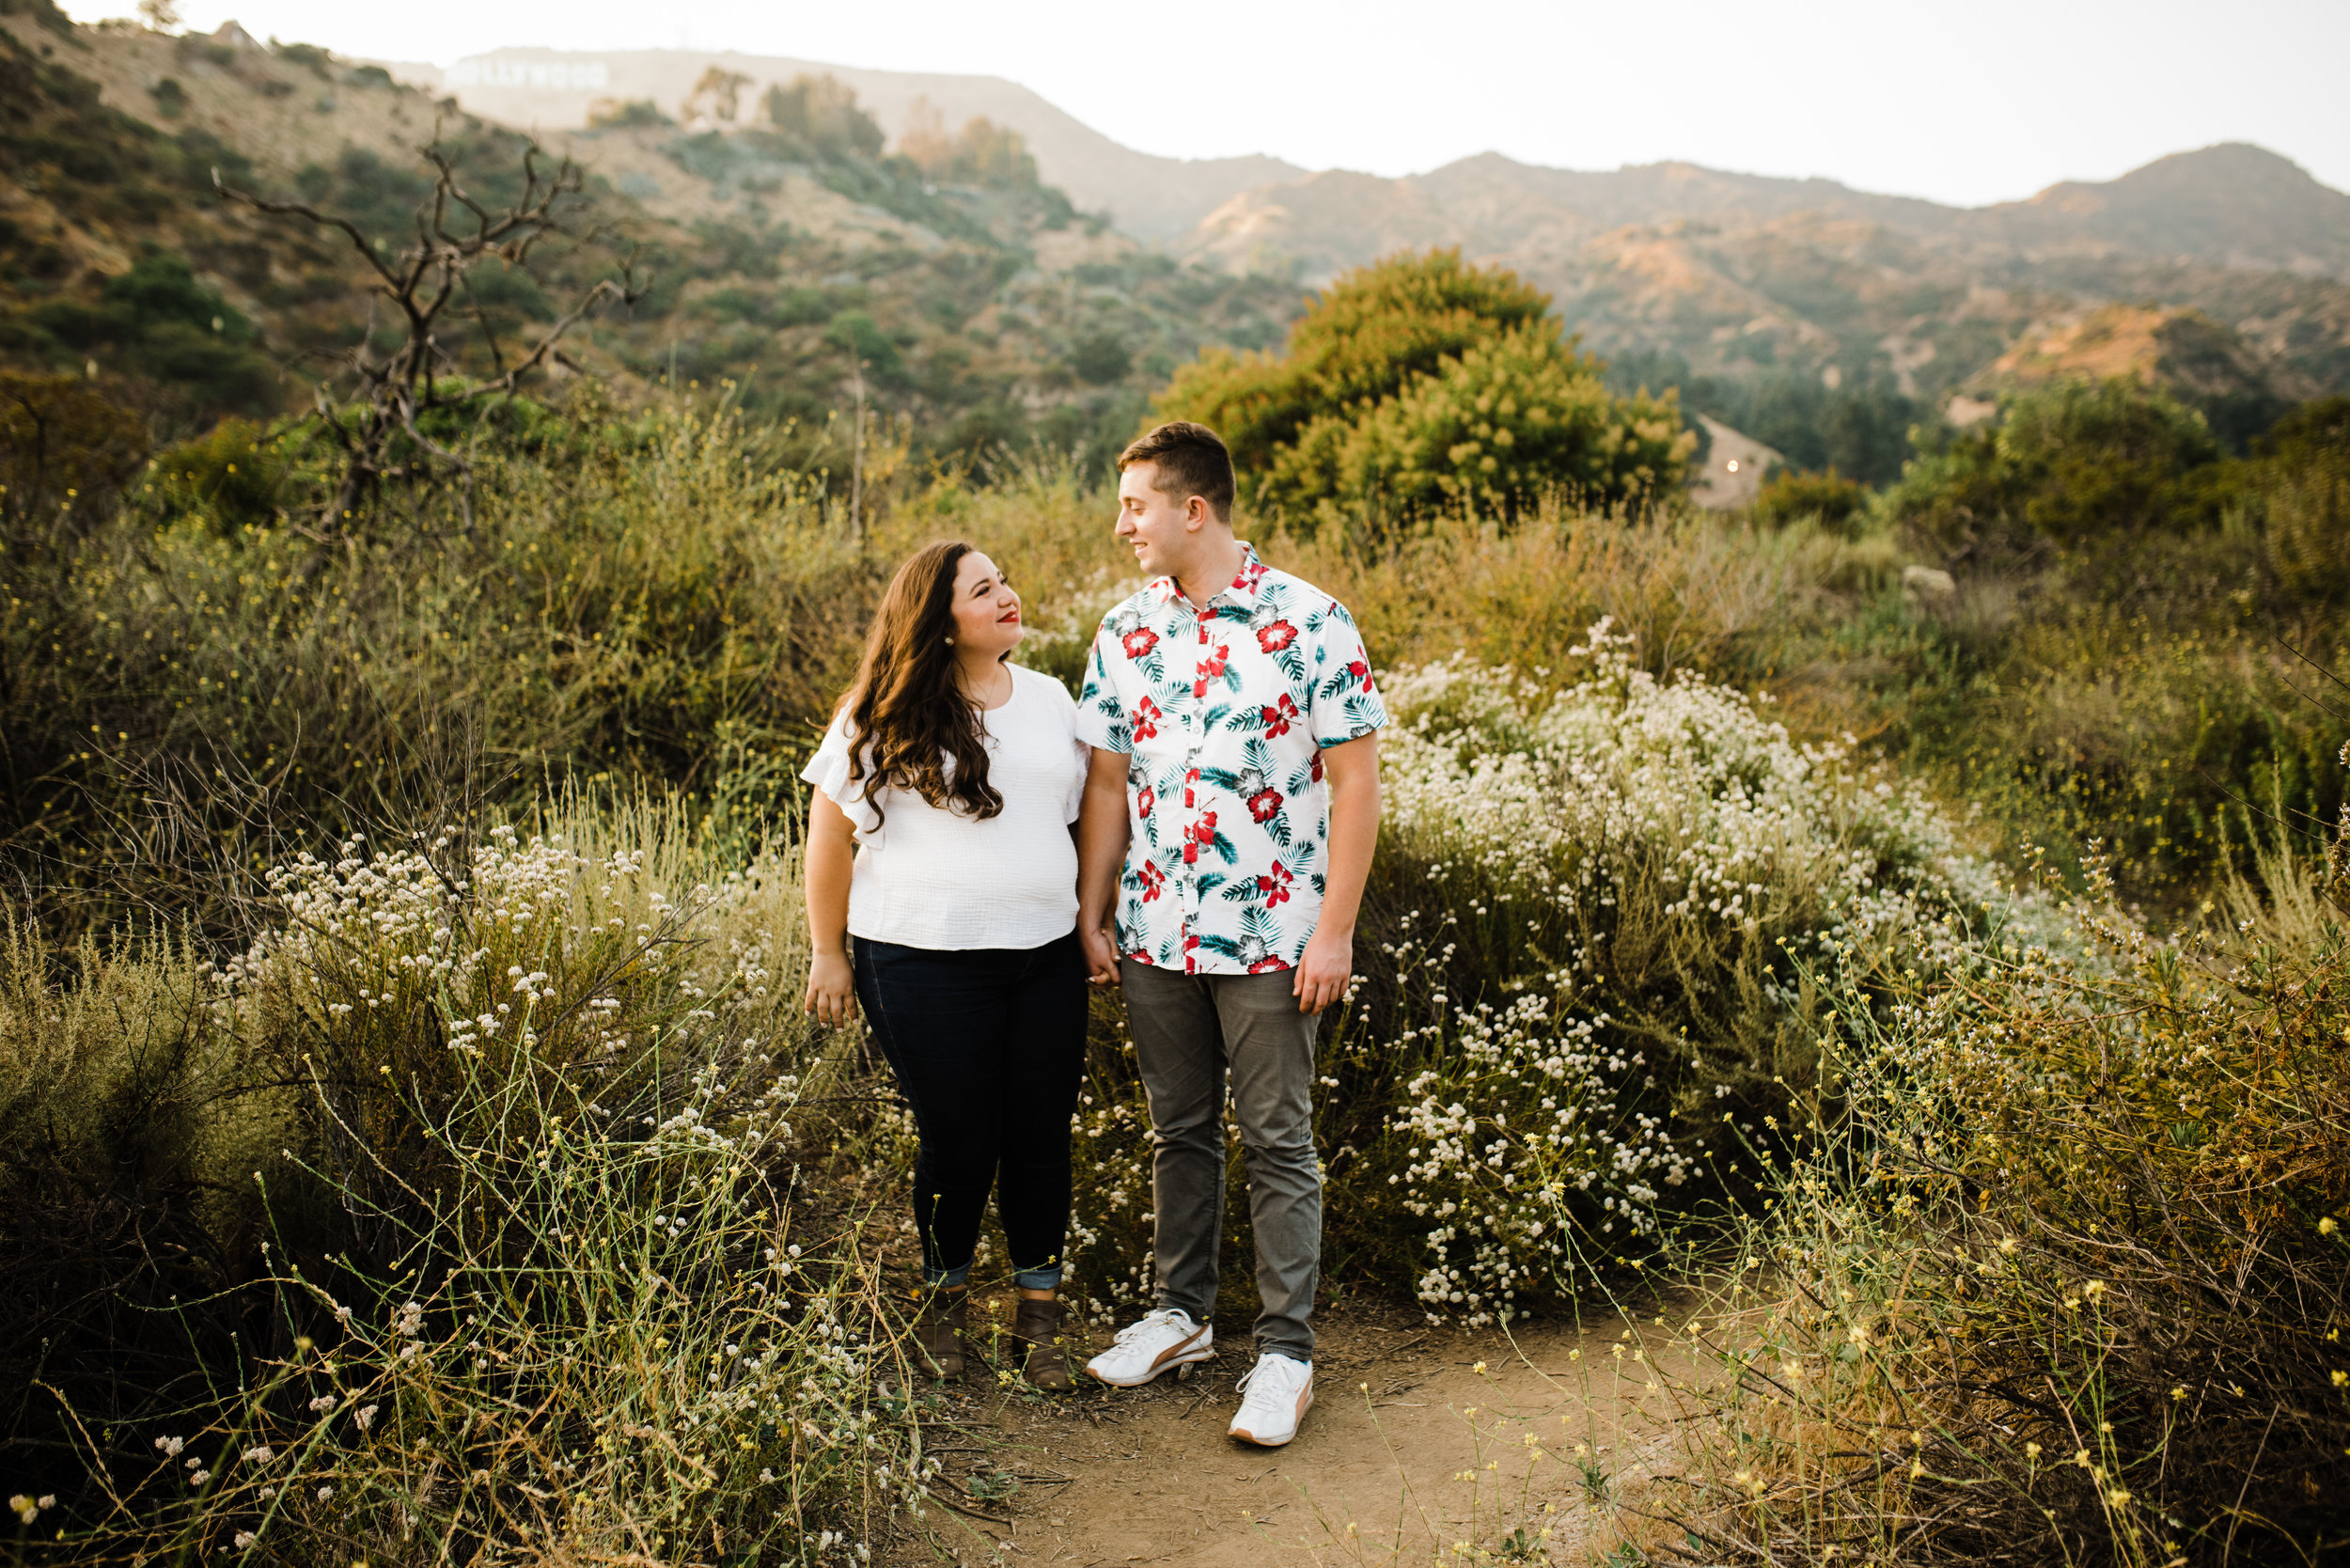 Happy couple during an adventurous Los Angeles engagement session at Bronson Canyon.